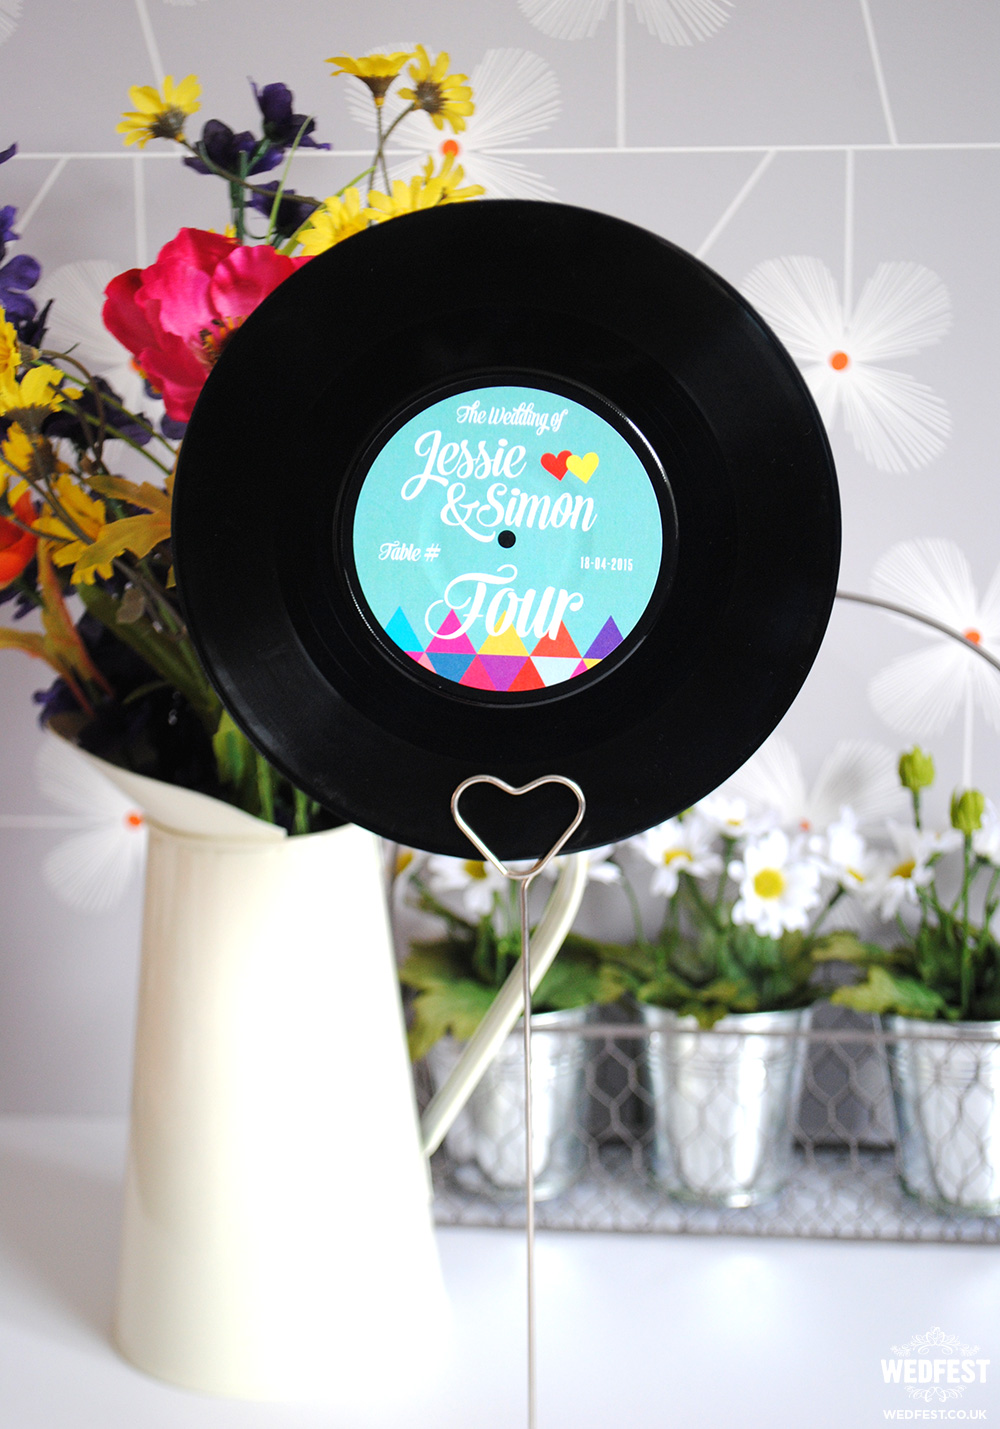 vinyl record wedding stationery